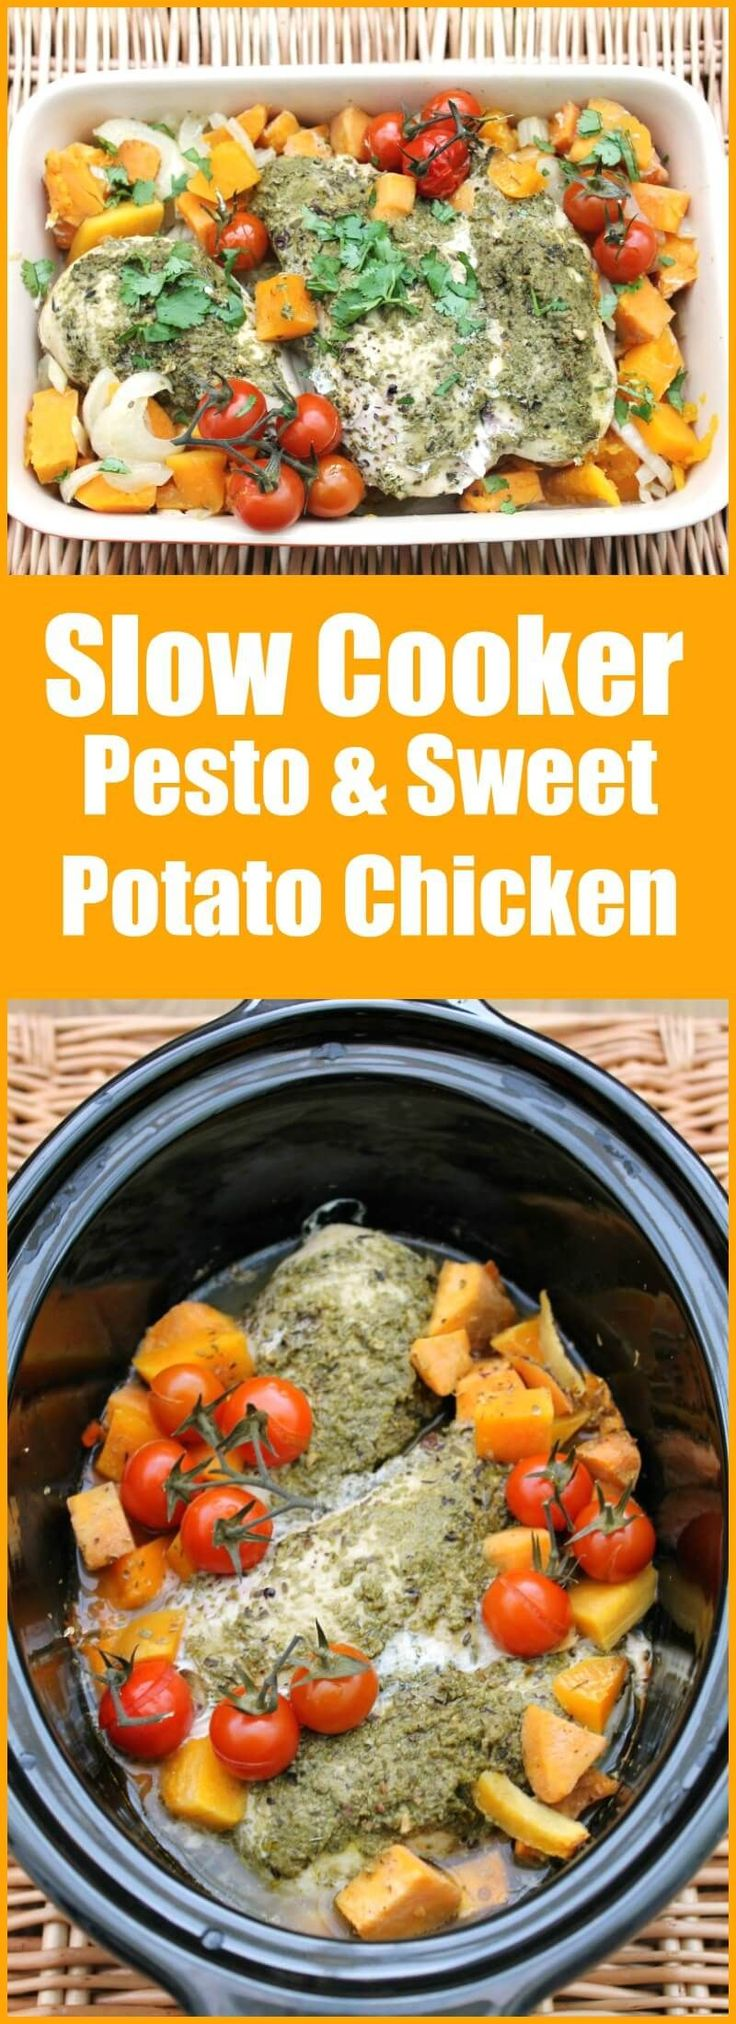 Slow Cooker Pesto and Sweet Potato Chicken - the ideal spring and summer dish to make in your crockpot, full of bright colours and fresh flavours